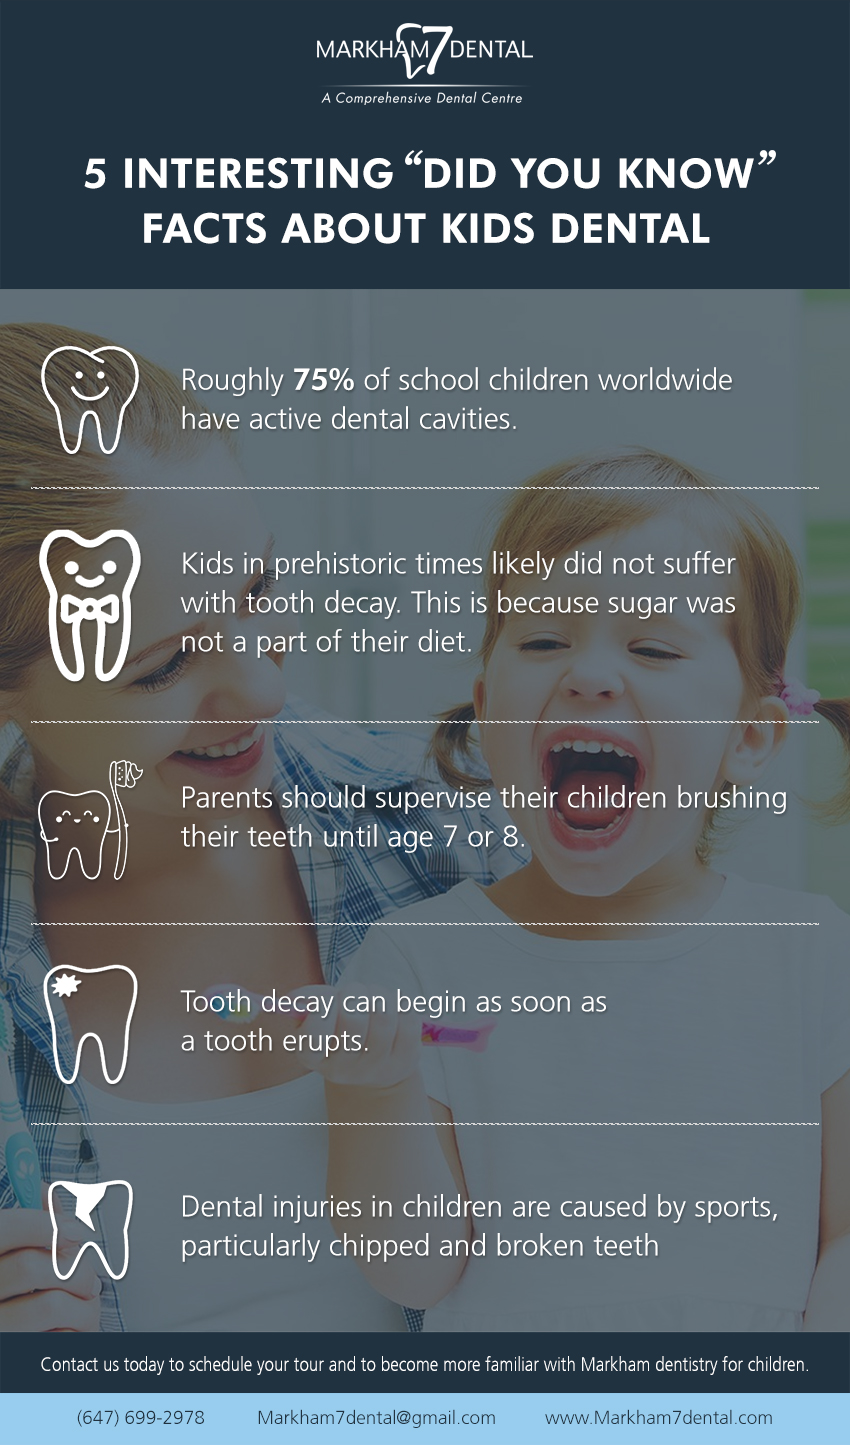 5 interesting 'Did You Know' facts about Kids Dental